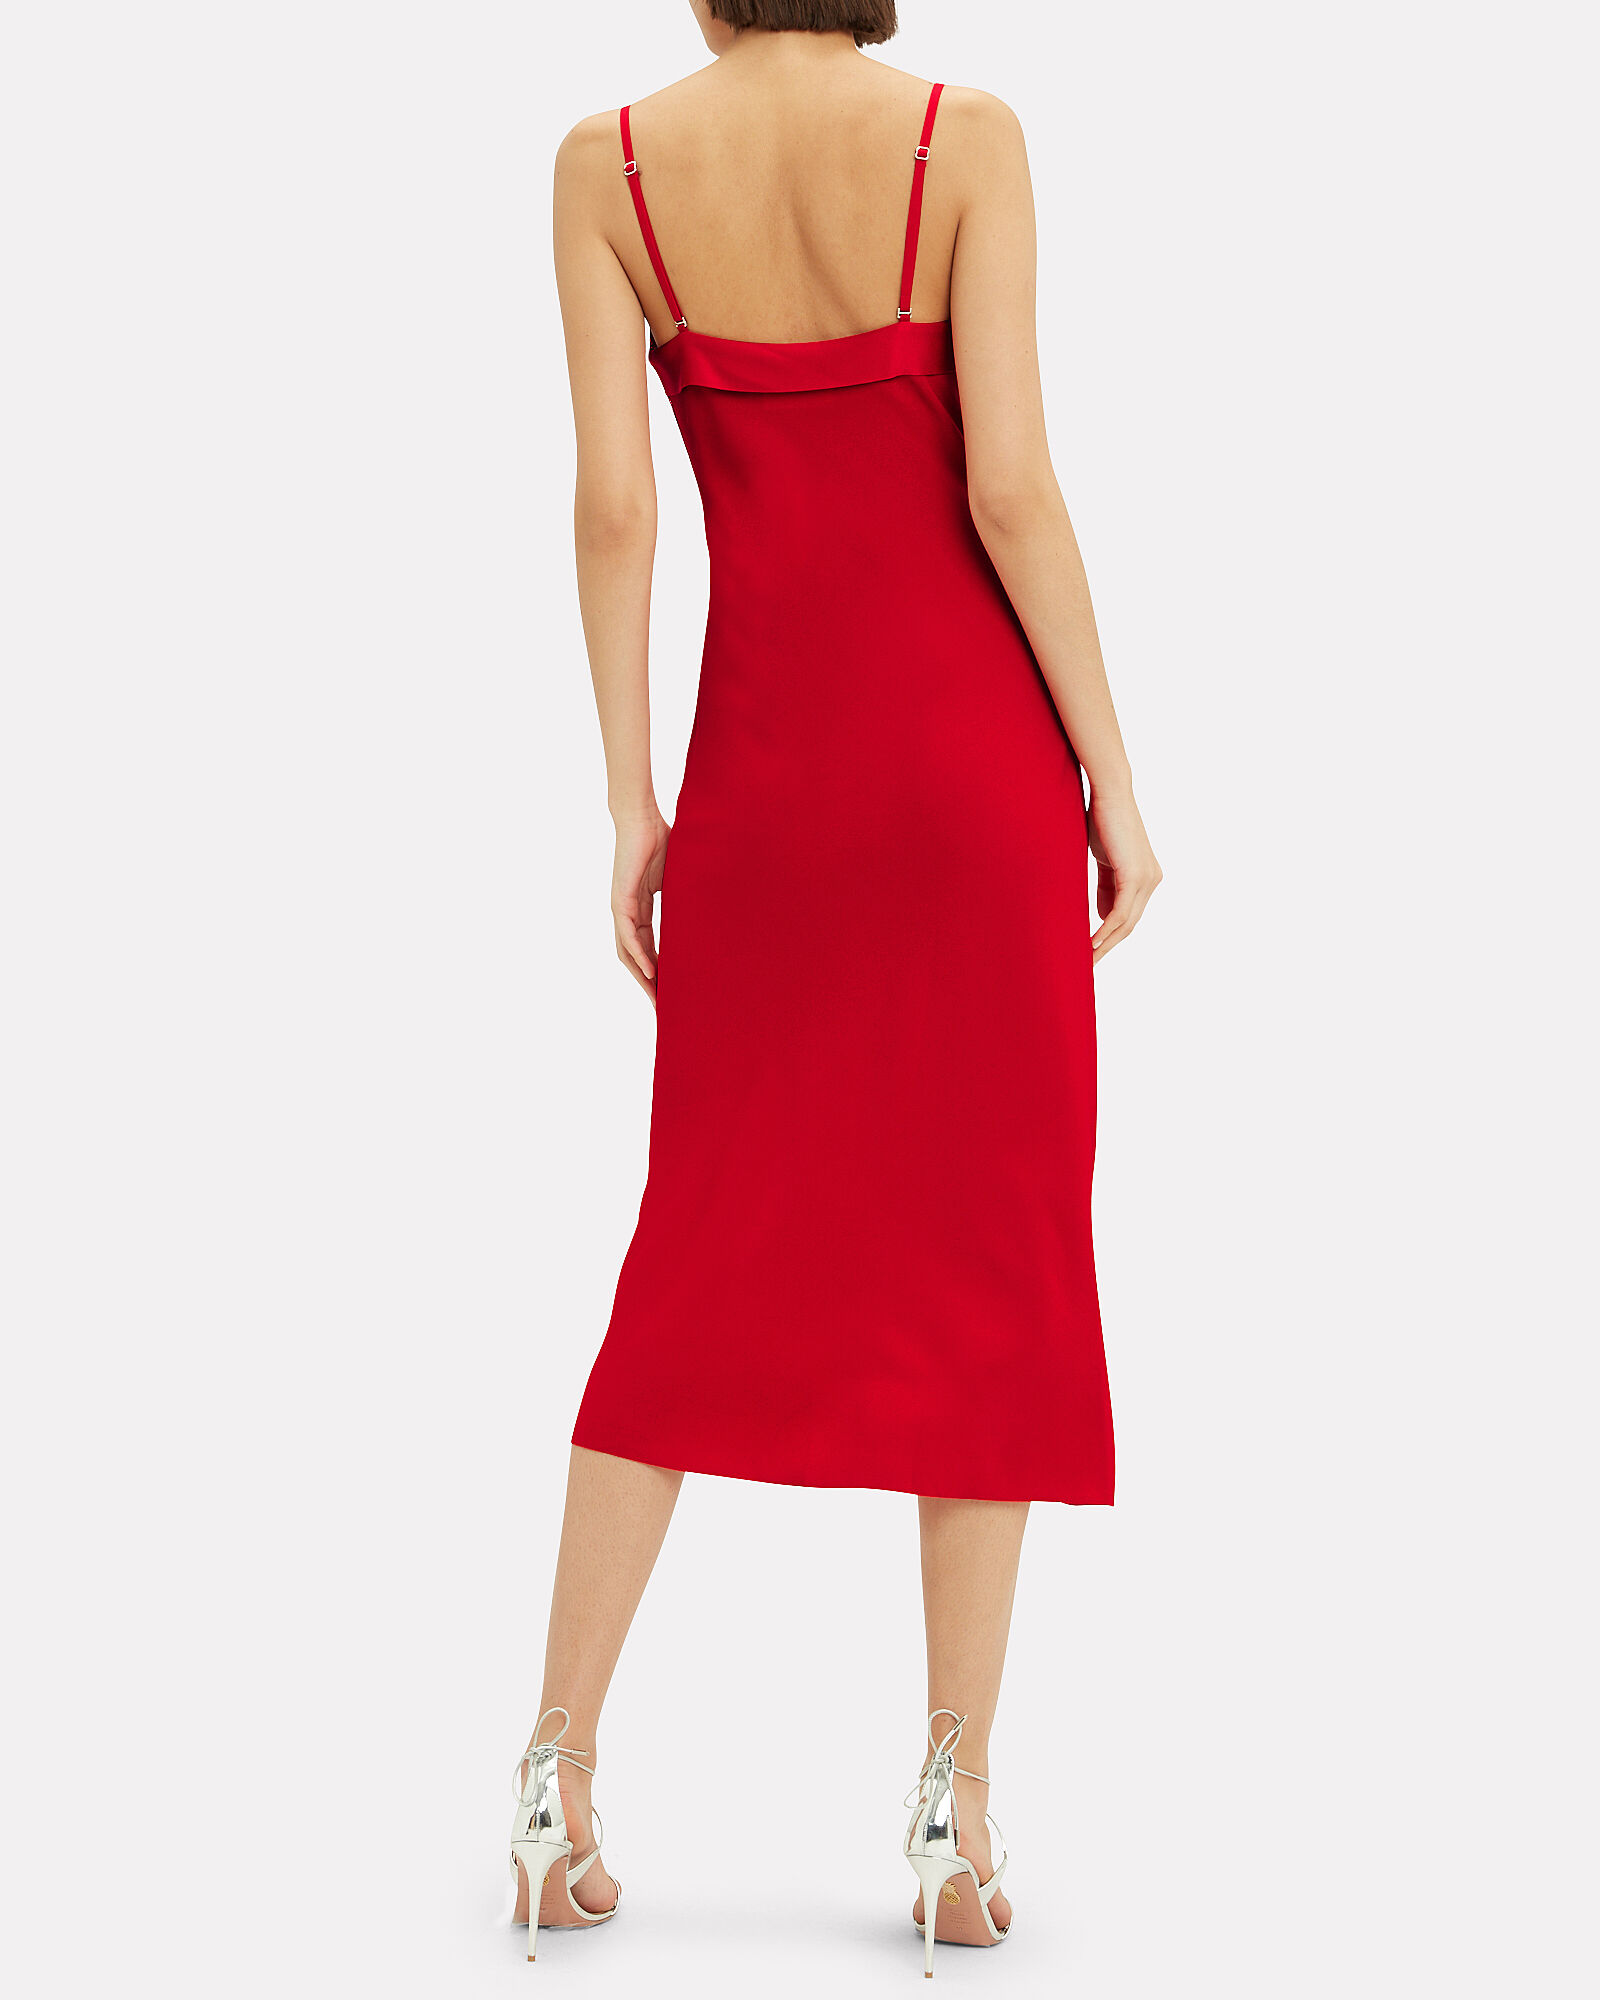 Stencil Lace Red Dress, RED, hi-res